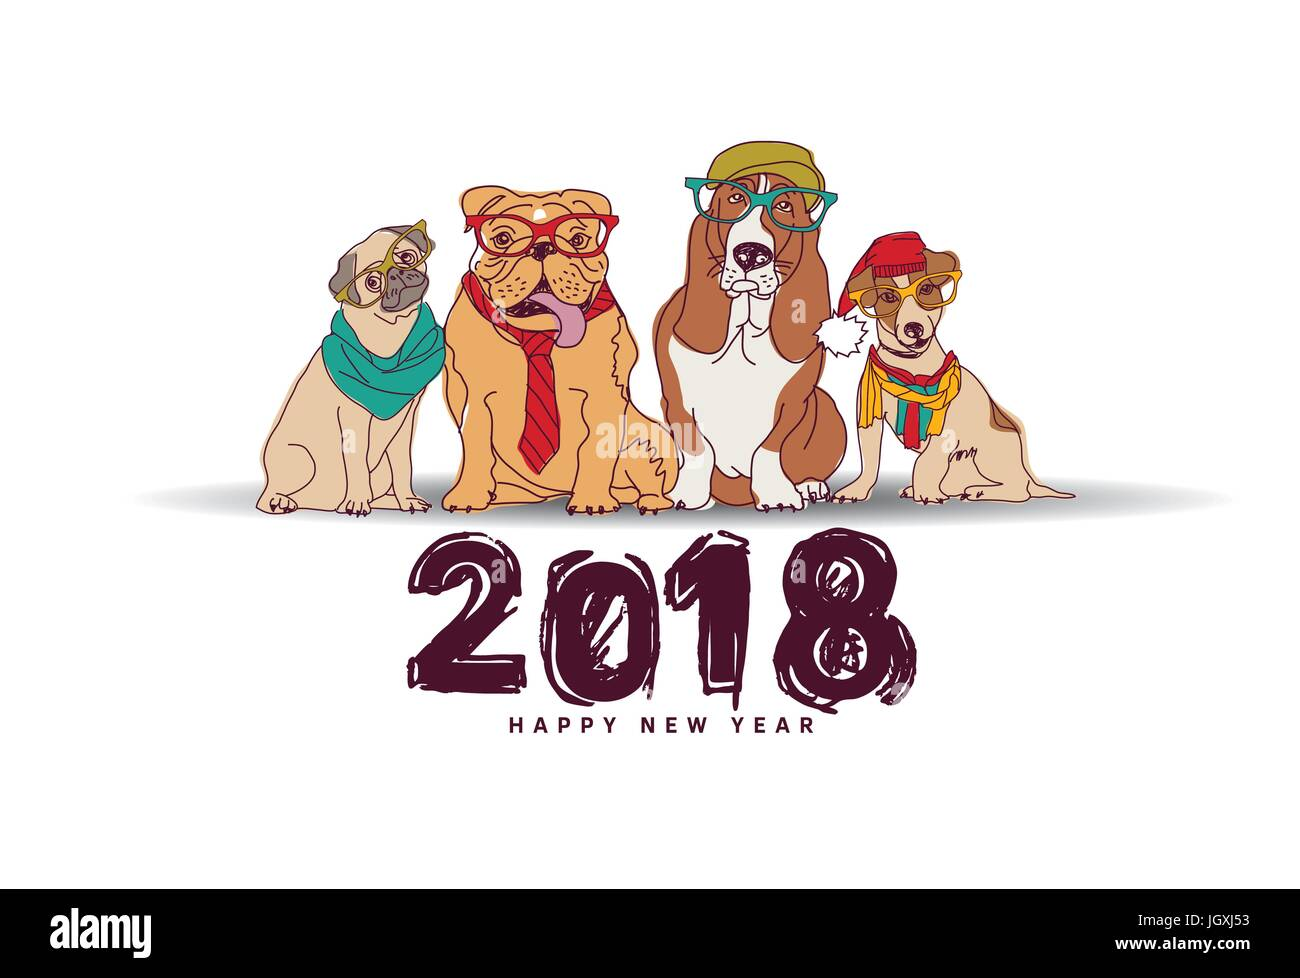 doodles happy new year card 2018 dogs isolate white